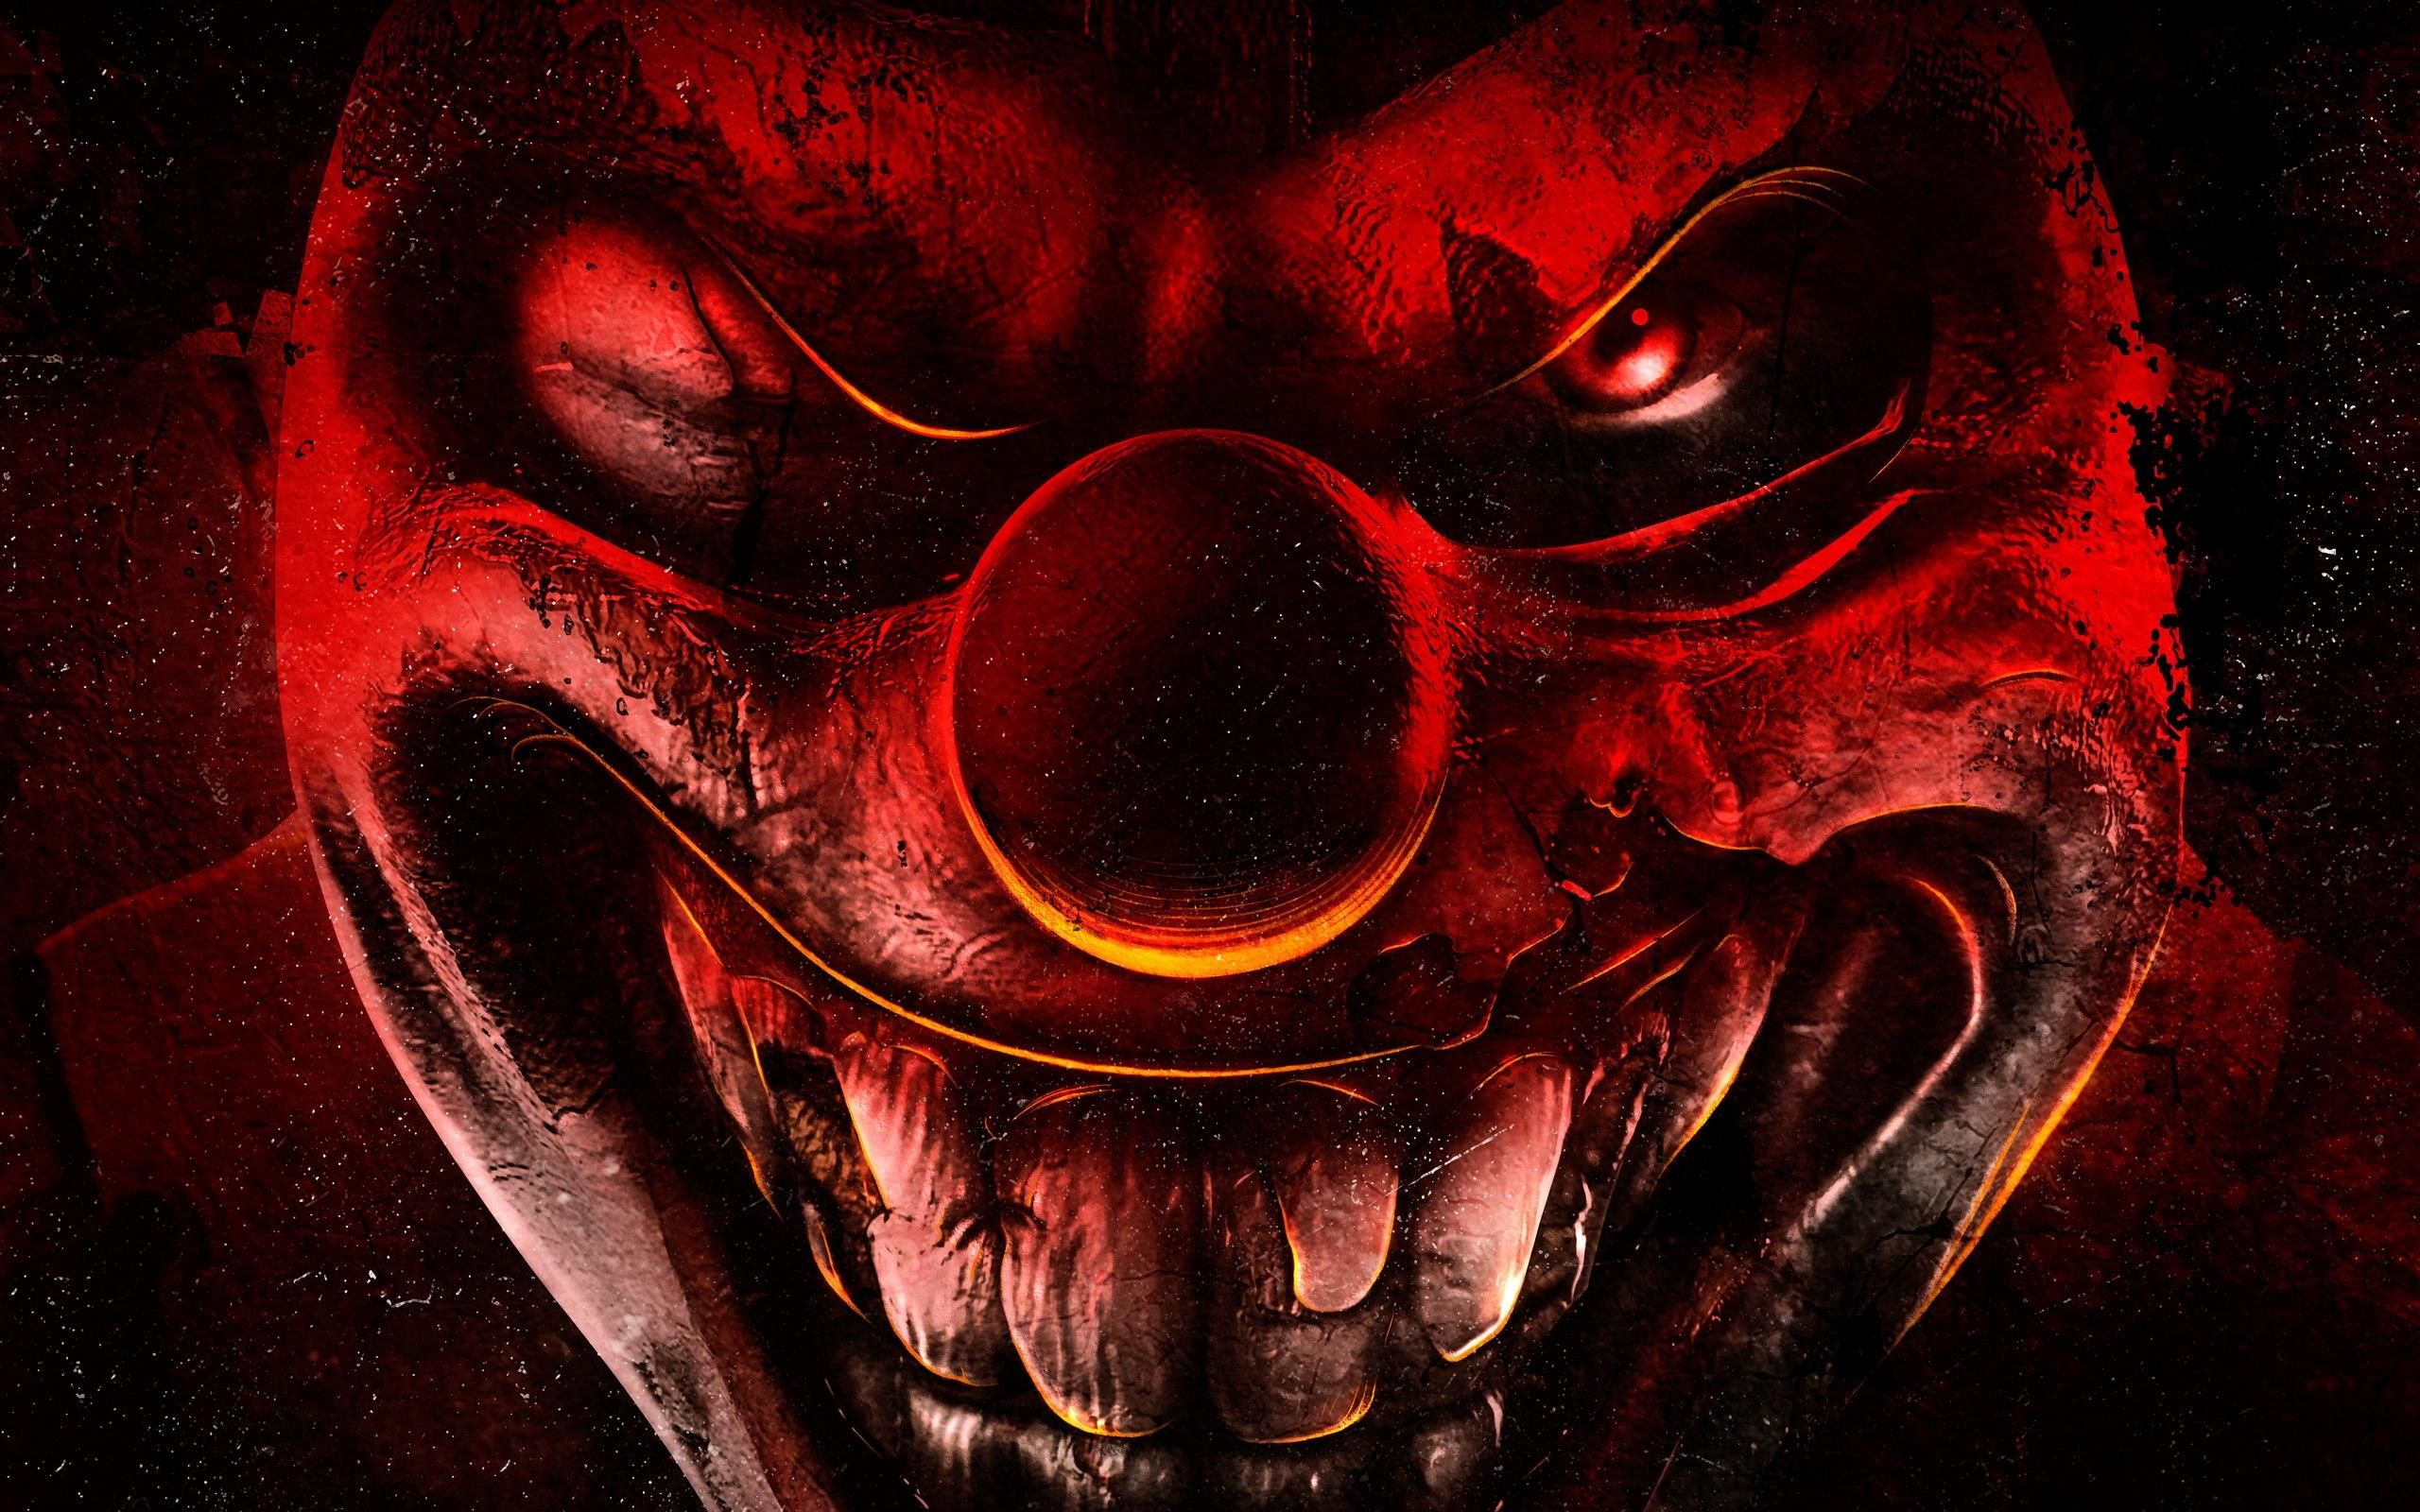 Image for Clown 4K Wallpapers Walli09 Dessin monstre, Le